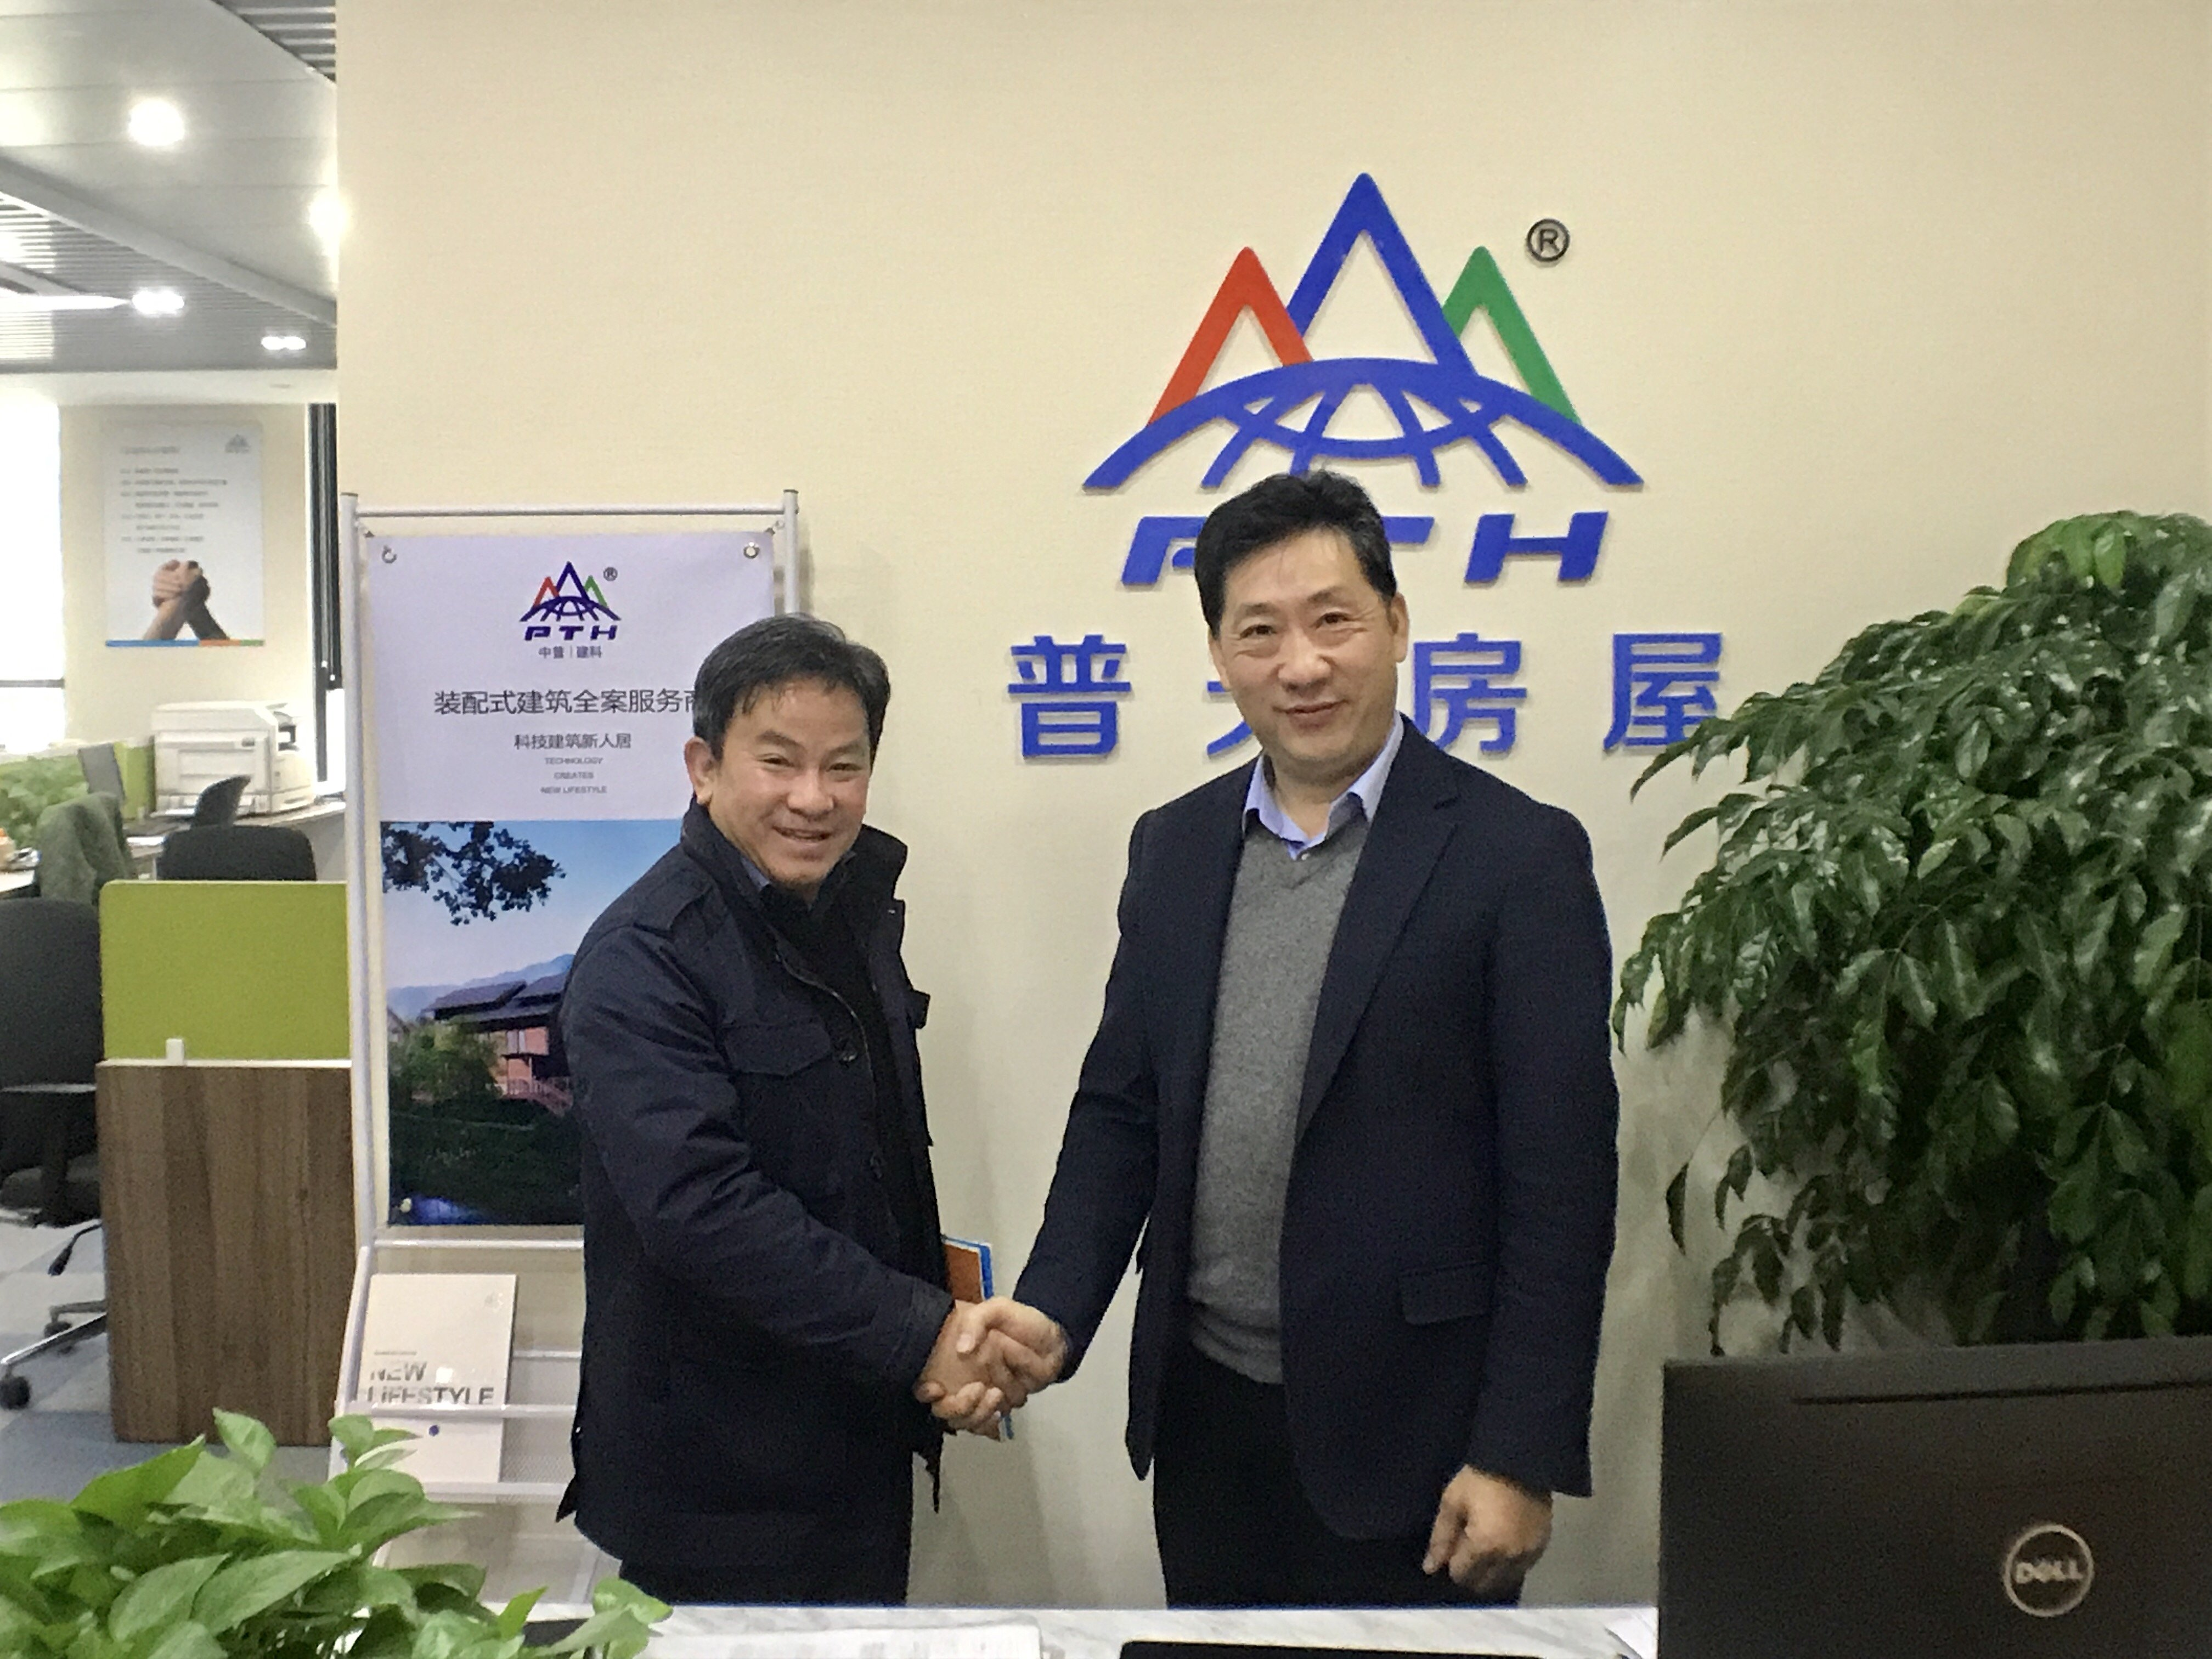 Mr.Long Nguyen and Mr.John visited our company